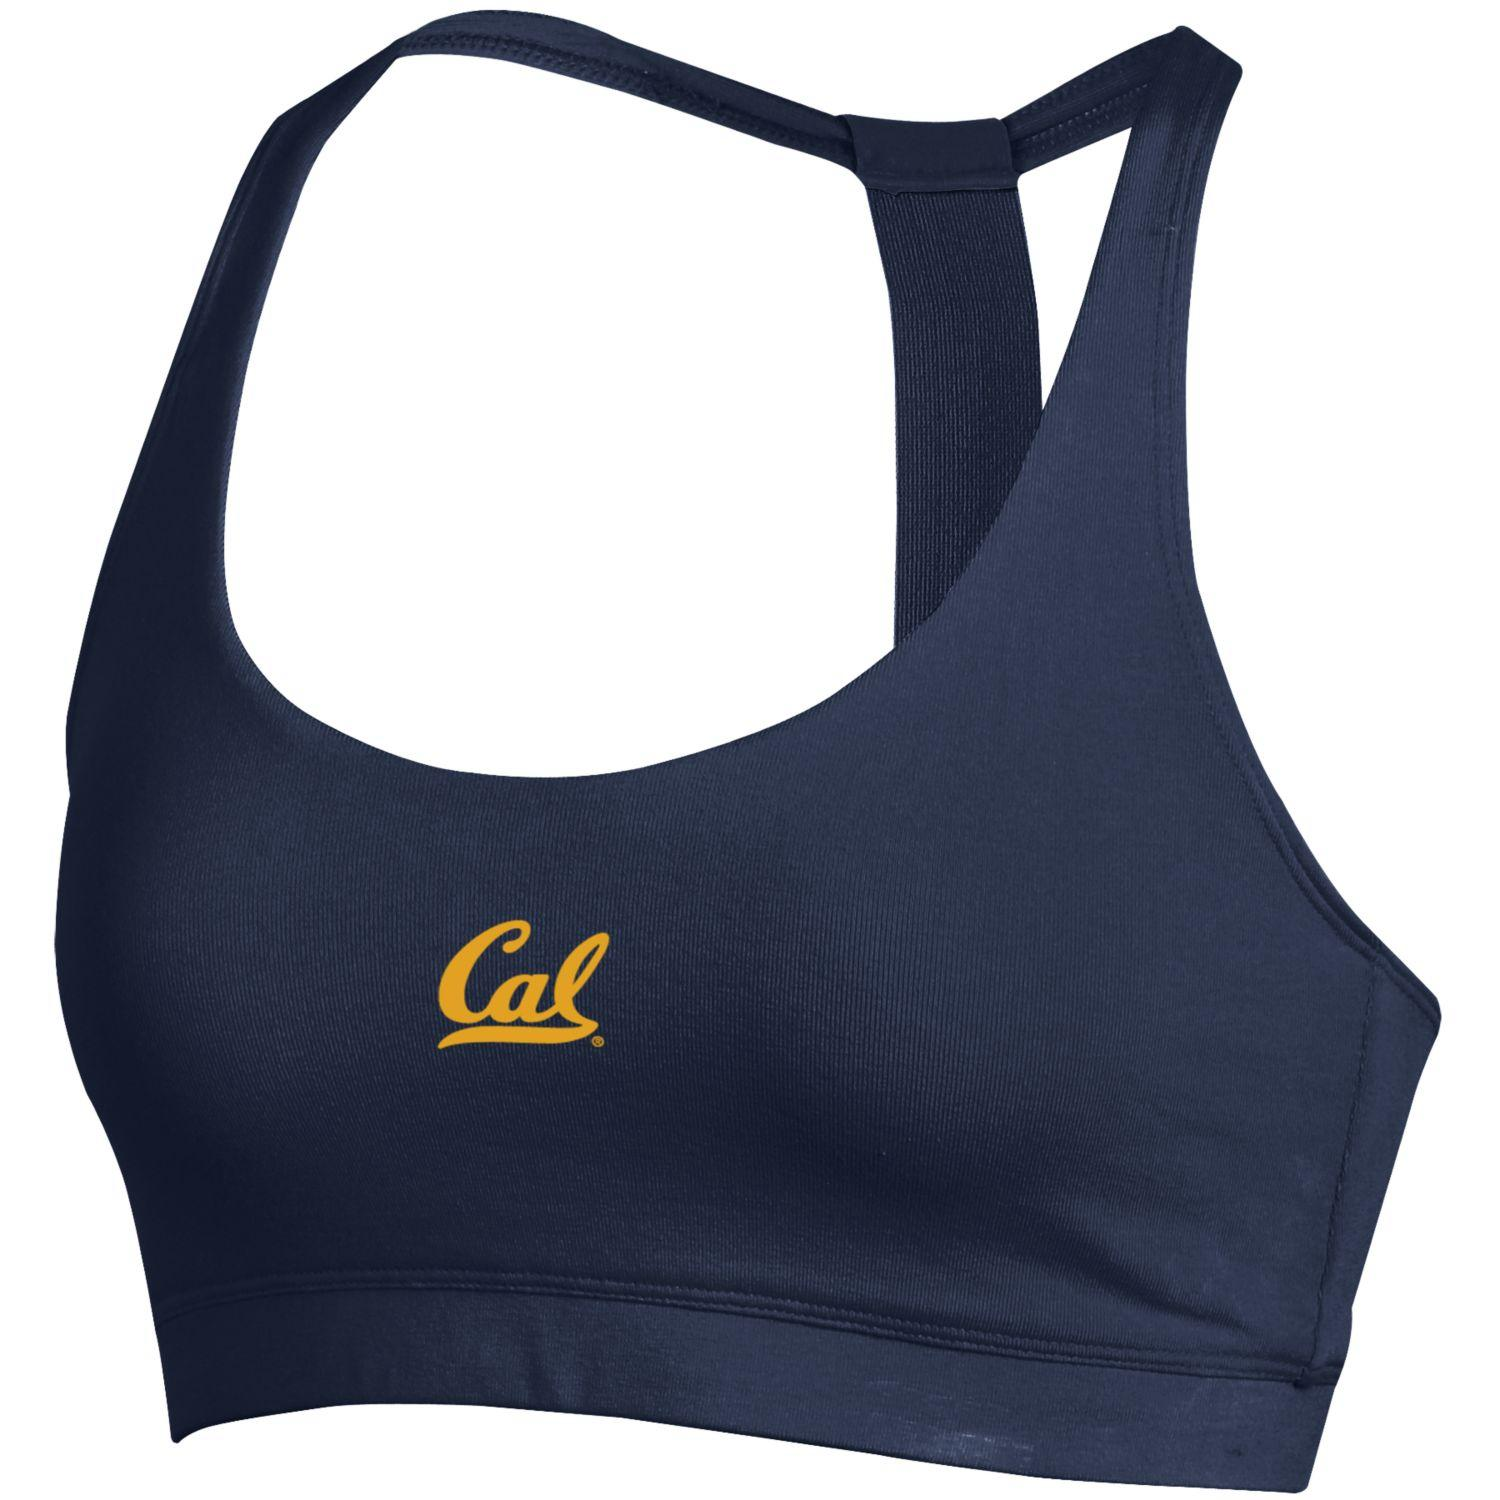 University of California Berkeley Under Armour Favorites Bra